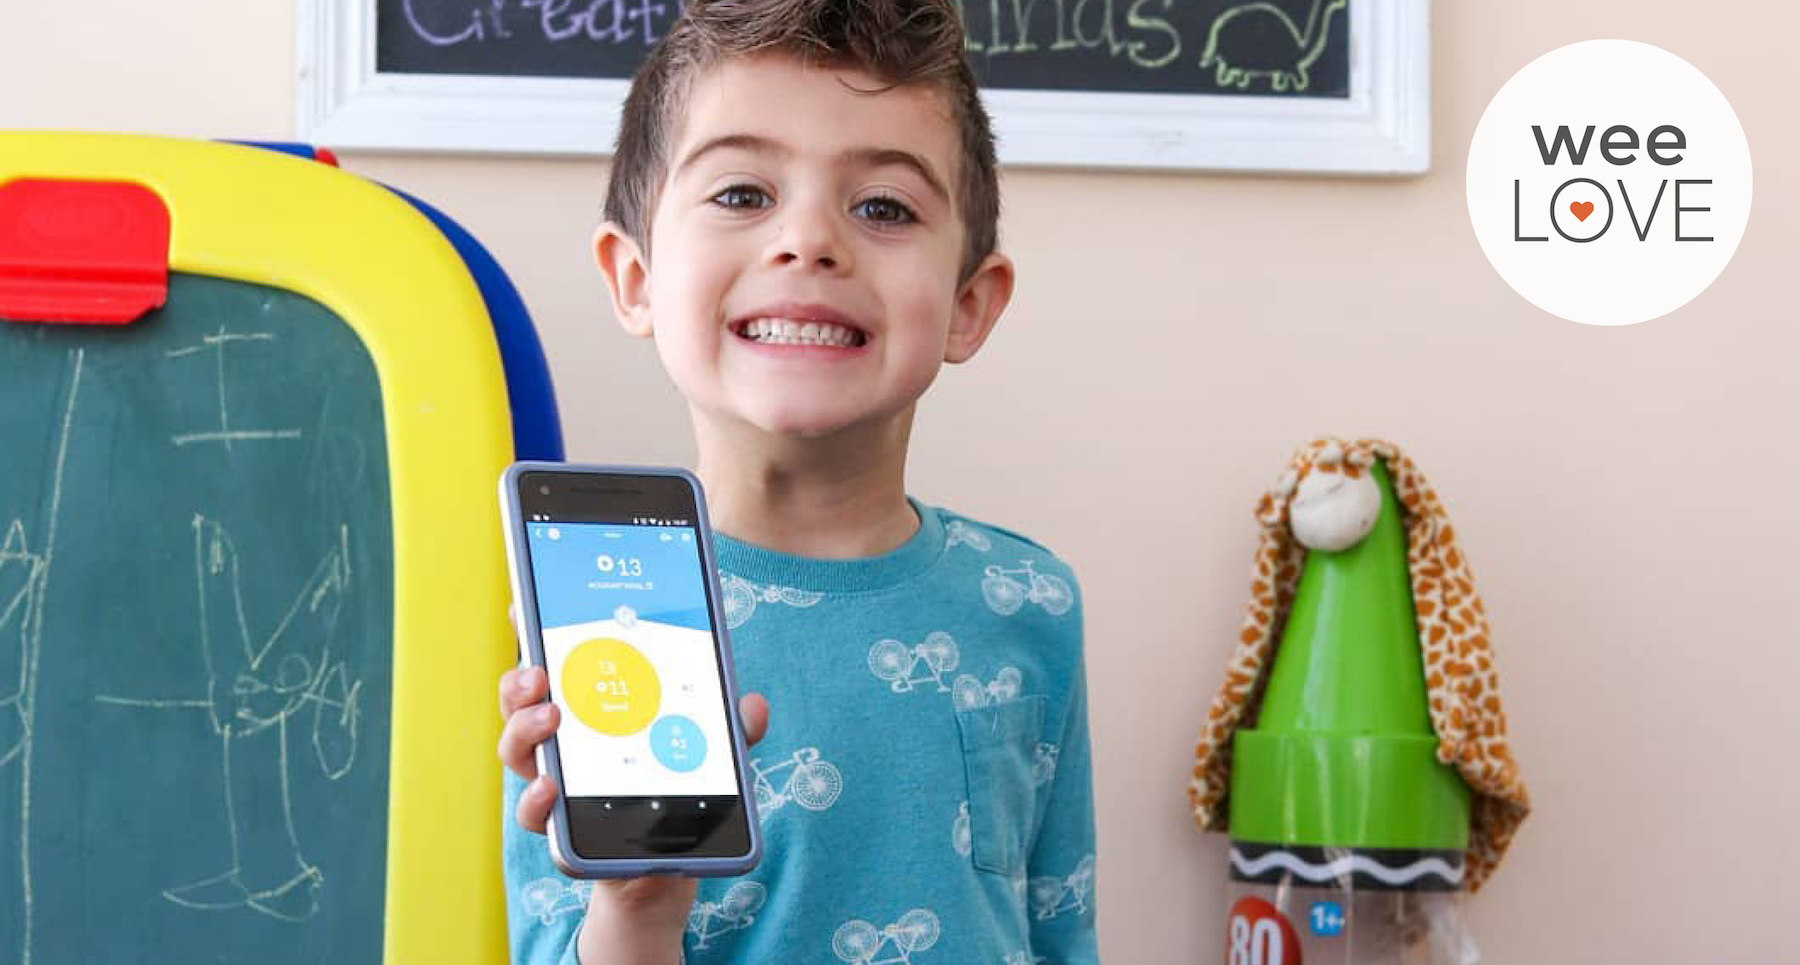 an image of a smiling young boy in a playroom, there is a chalkboard easel behind him, and he's holding a phone with the Rooster Money Allowance app on it.